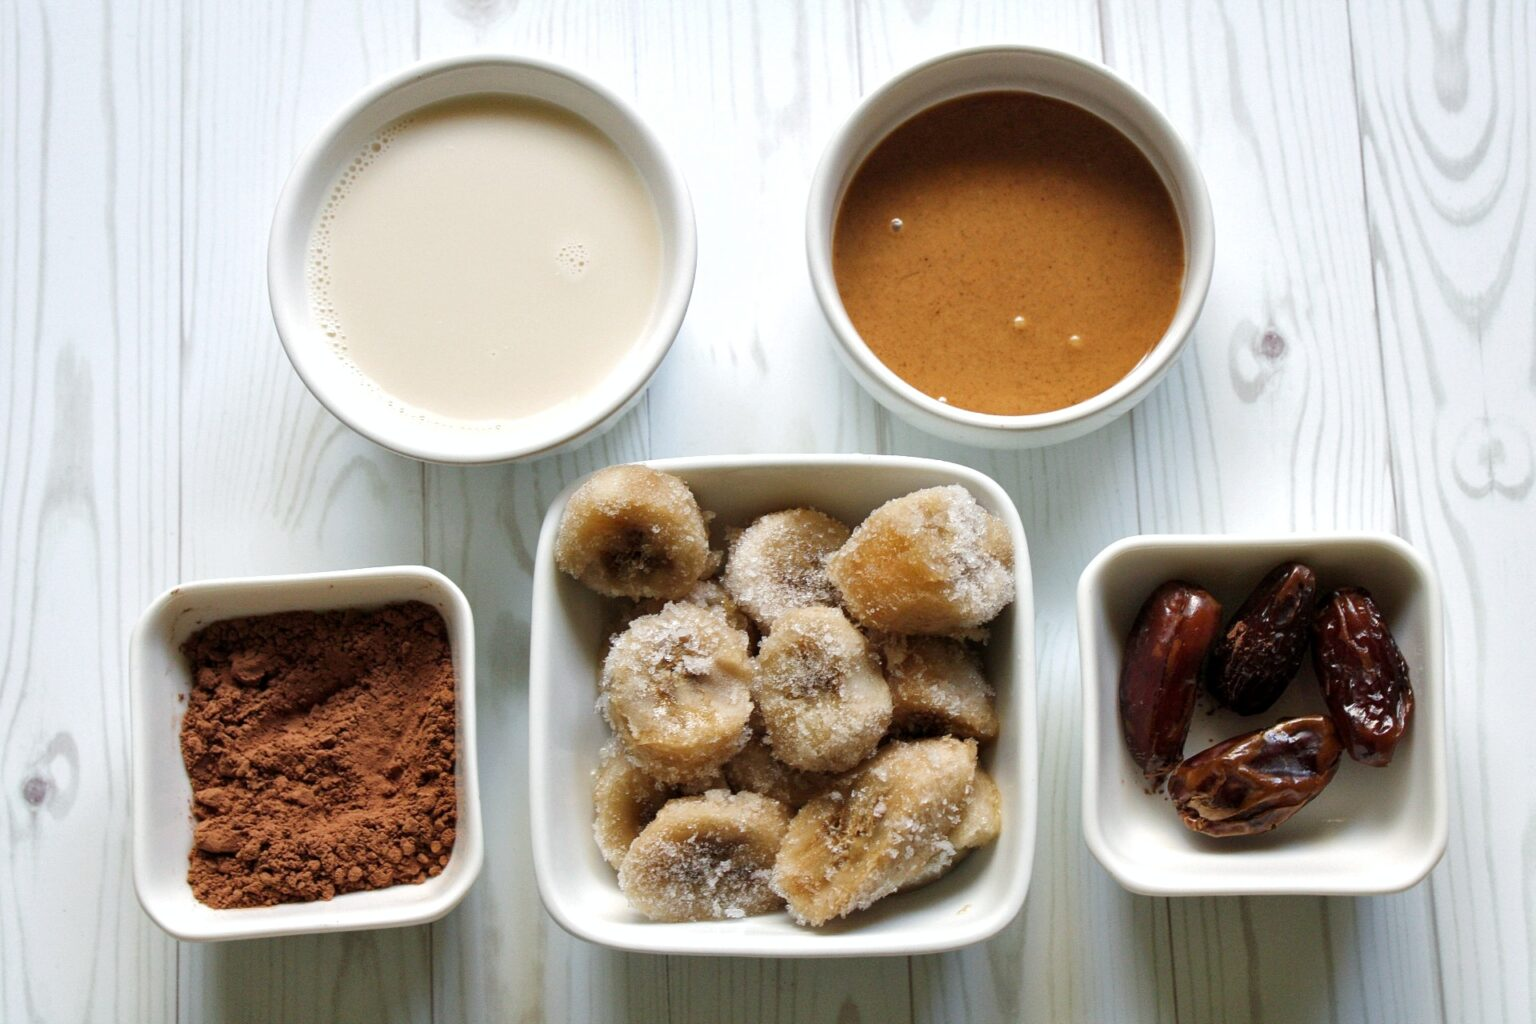 Smoothie ingredients: cocoa powder, frozen bananas, dates, peanut butter, and soy milk.